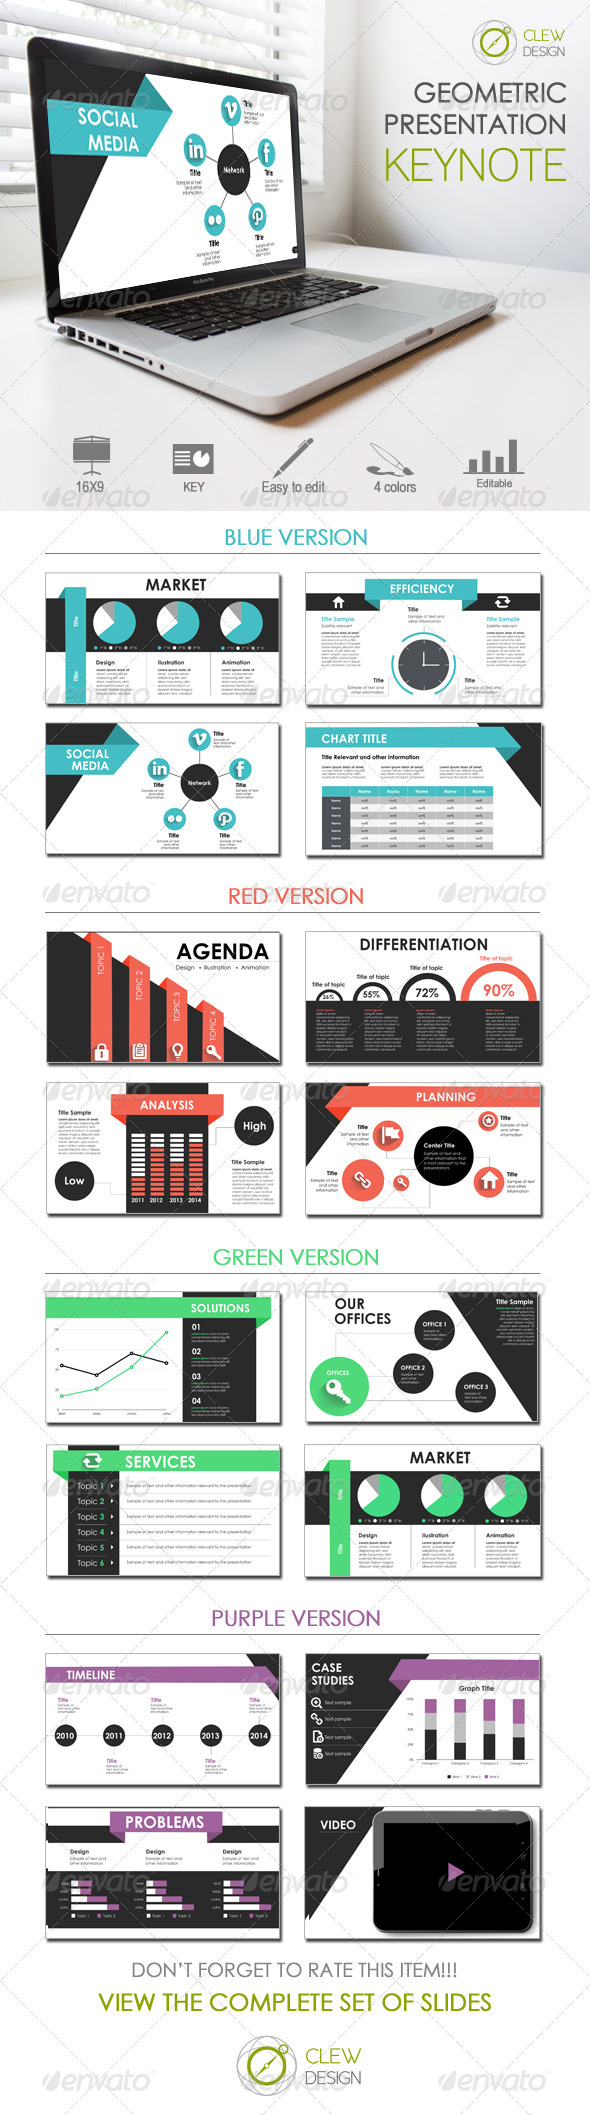 GraphicRiver Keynote Geometric Presentation 8130031